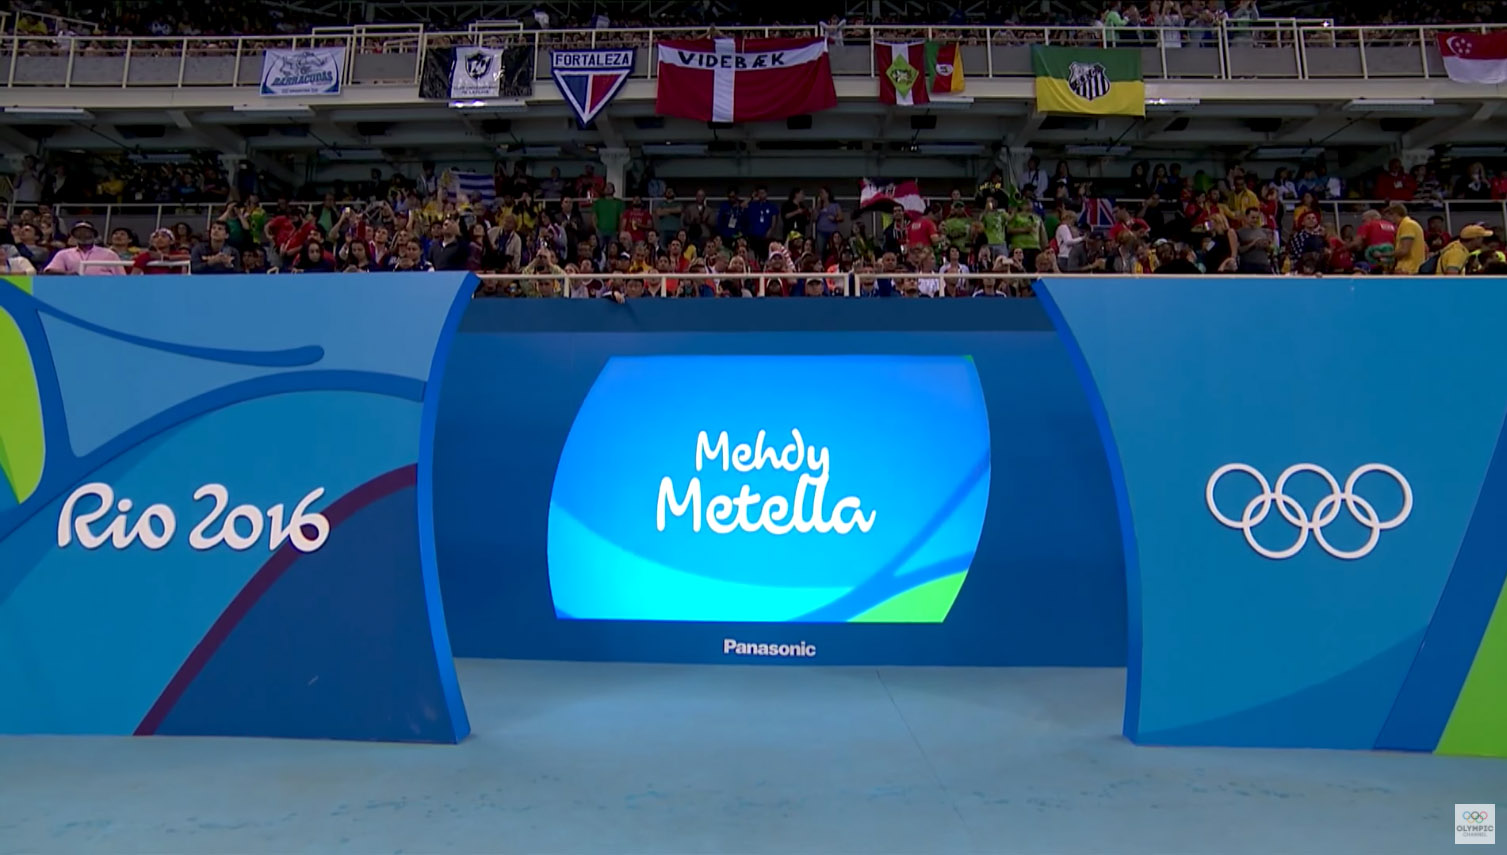 Rio_Swimming_Video-Board-4.jpg